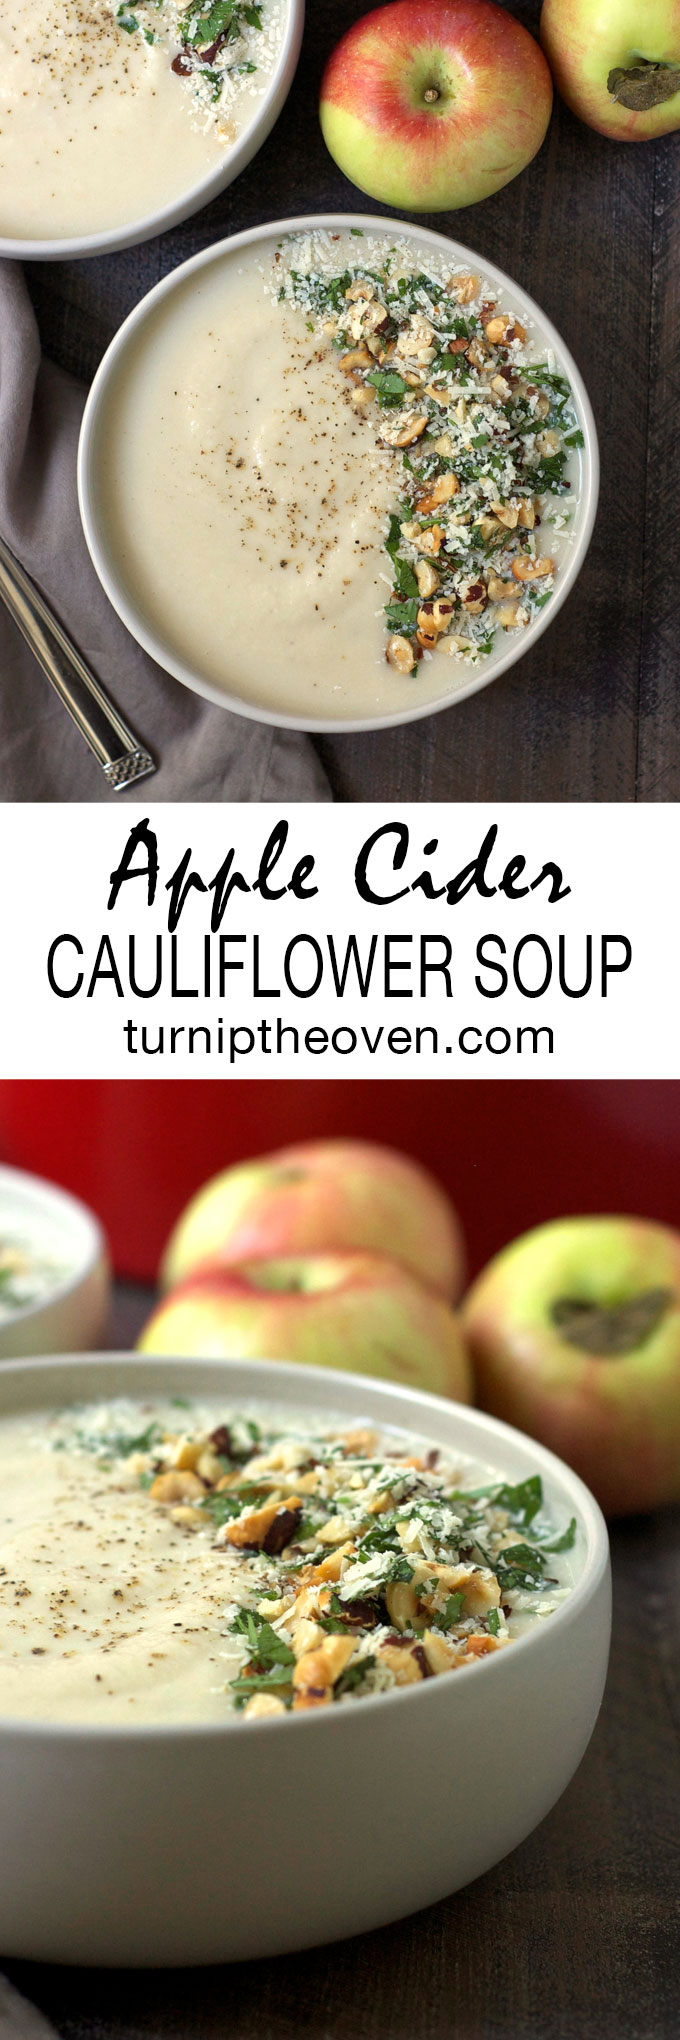 Apple cider and cauliflower are a perfect pairing in this simply, silky soup. Gluten-free, vegetarian, and freezer-friendly!